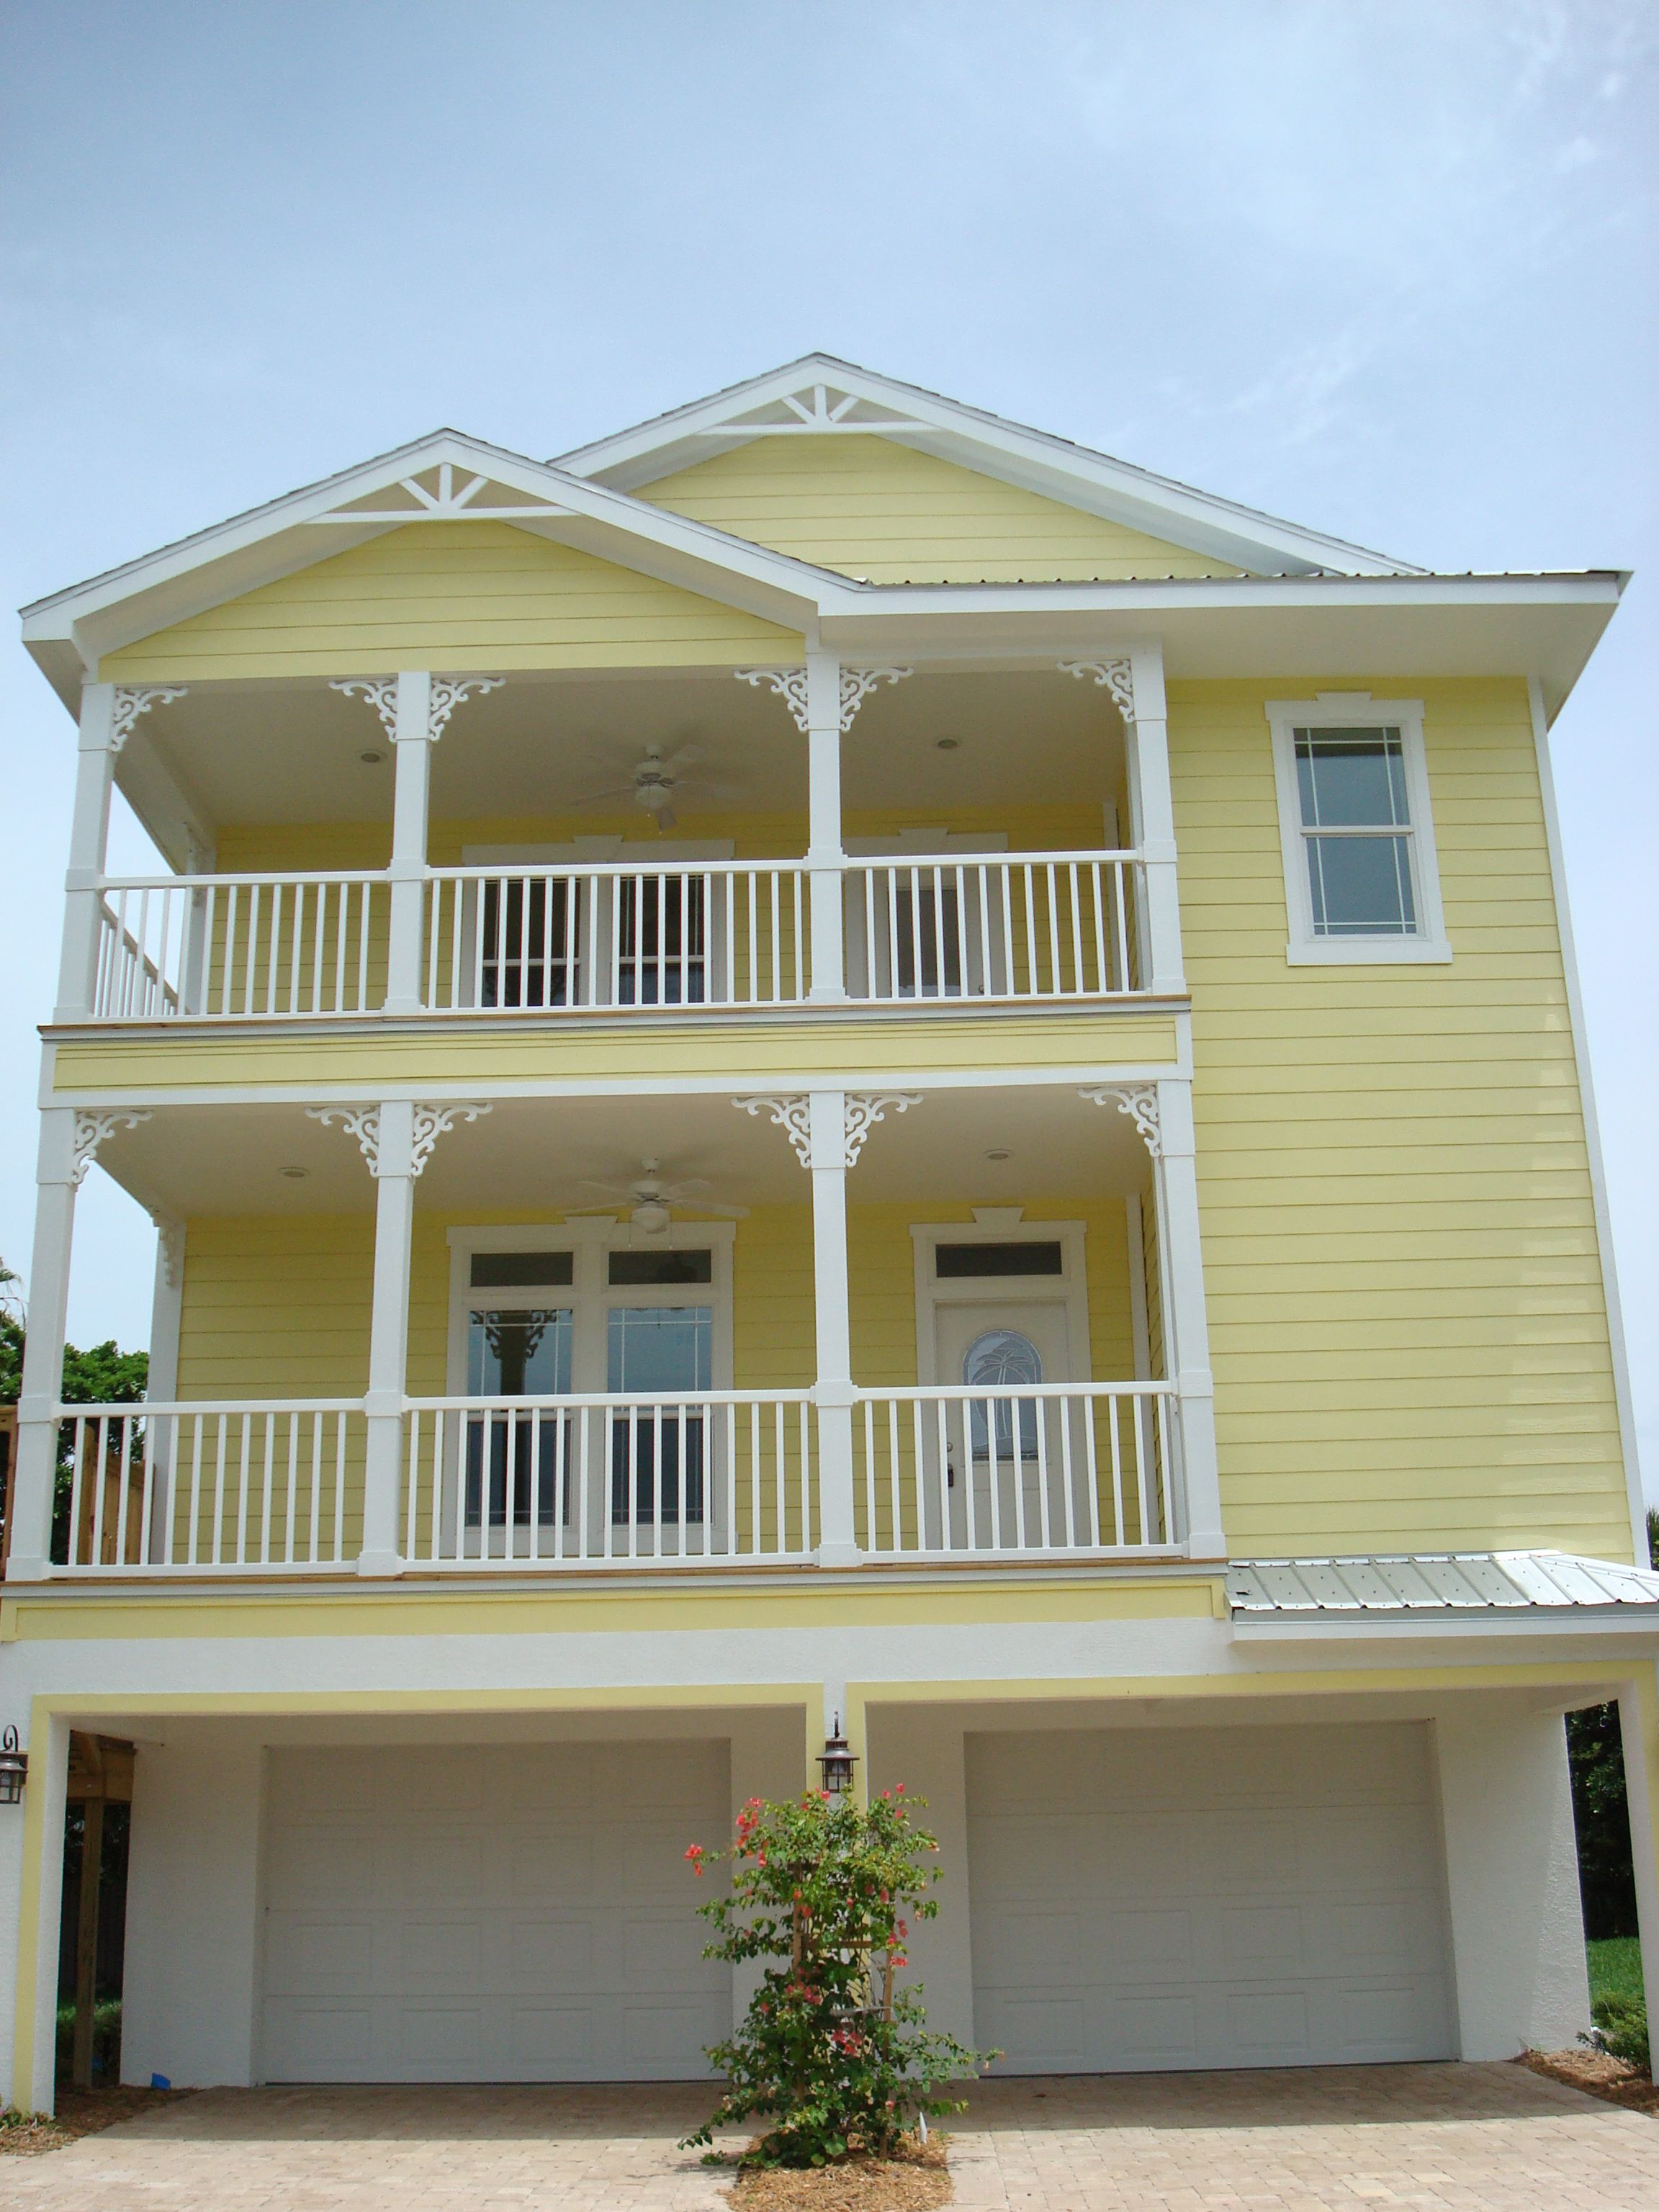 destin nantucket cottages kensington resort cheongpyeong pin fl pinterest